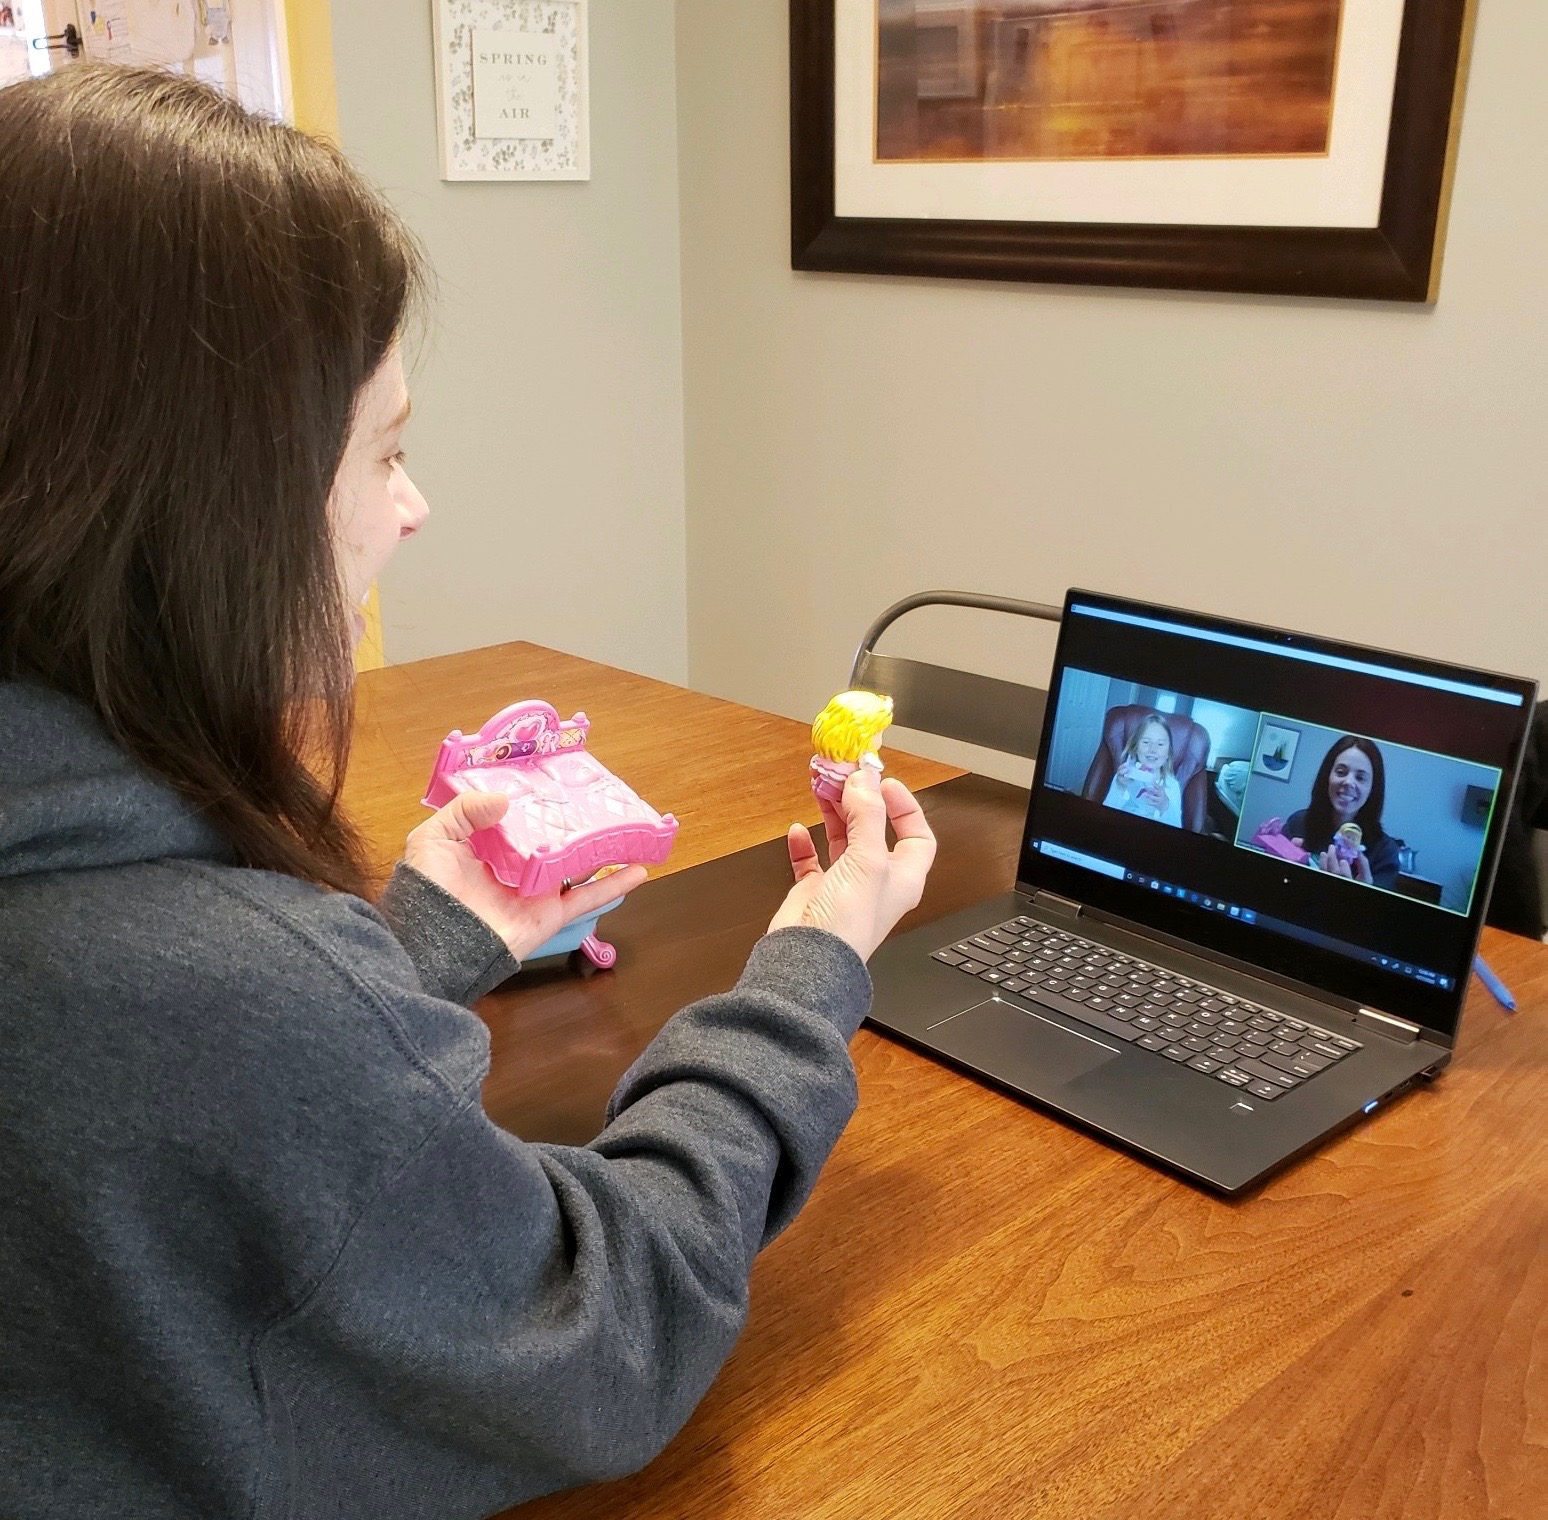 Speech therapist providing telehealth services.